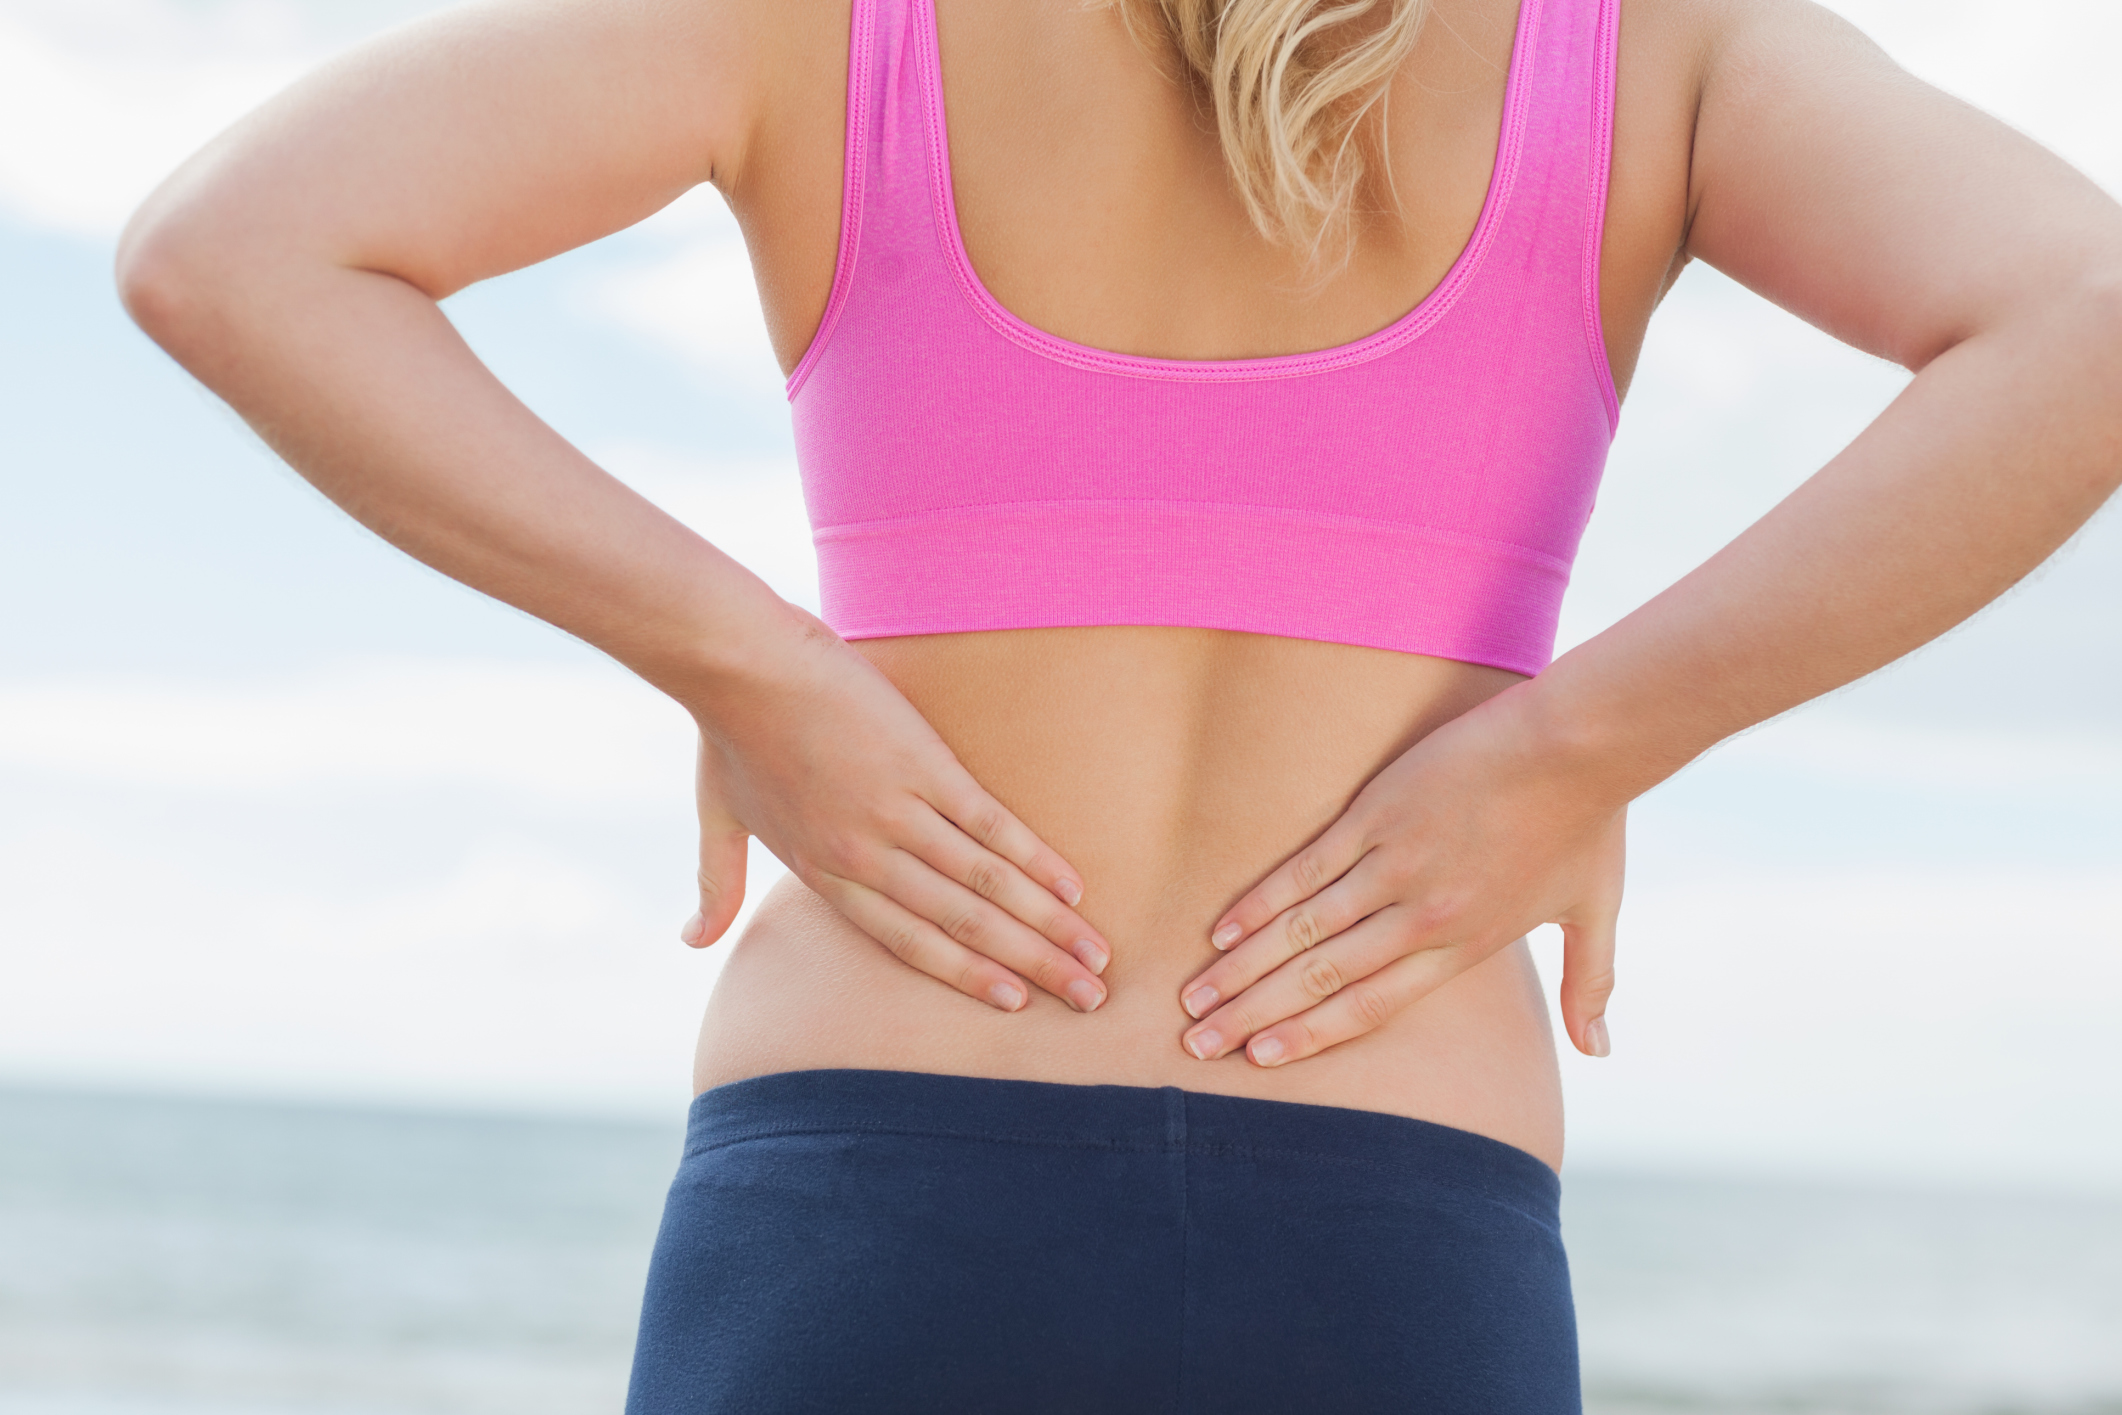 Can back injuries cause anal leakage